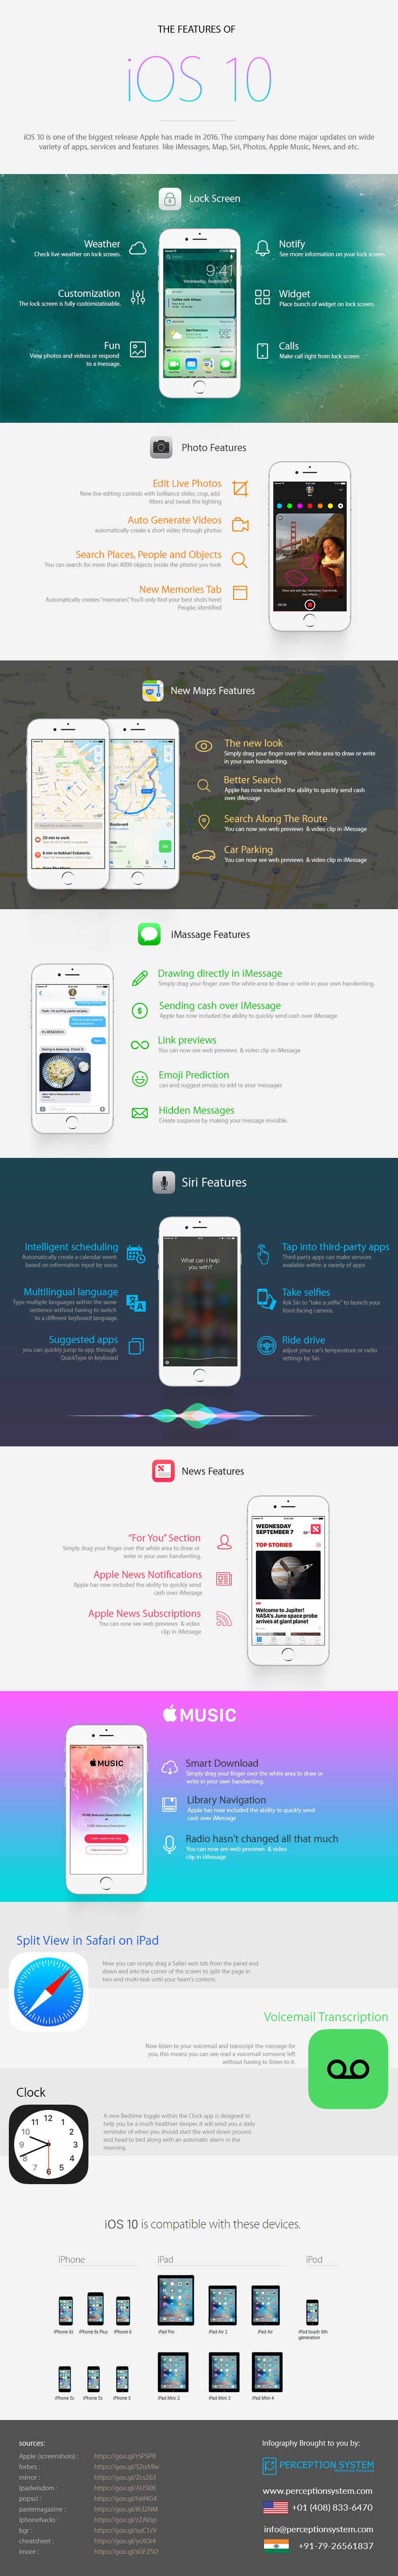 Infographic: Amazing iOS 10 Features Should Know in 3 Minutes - Image 1